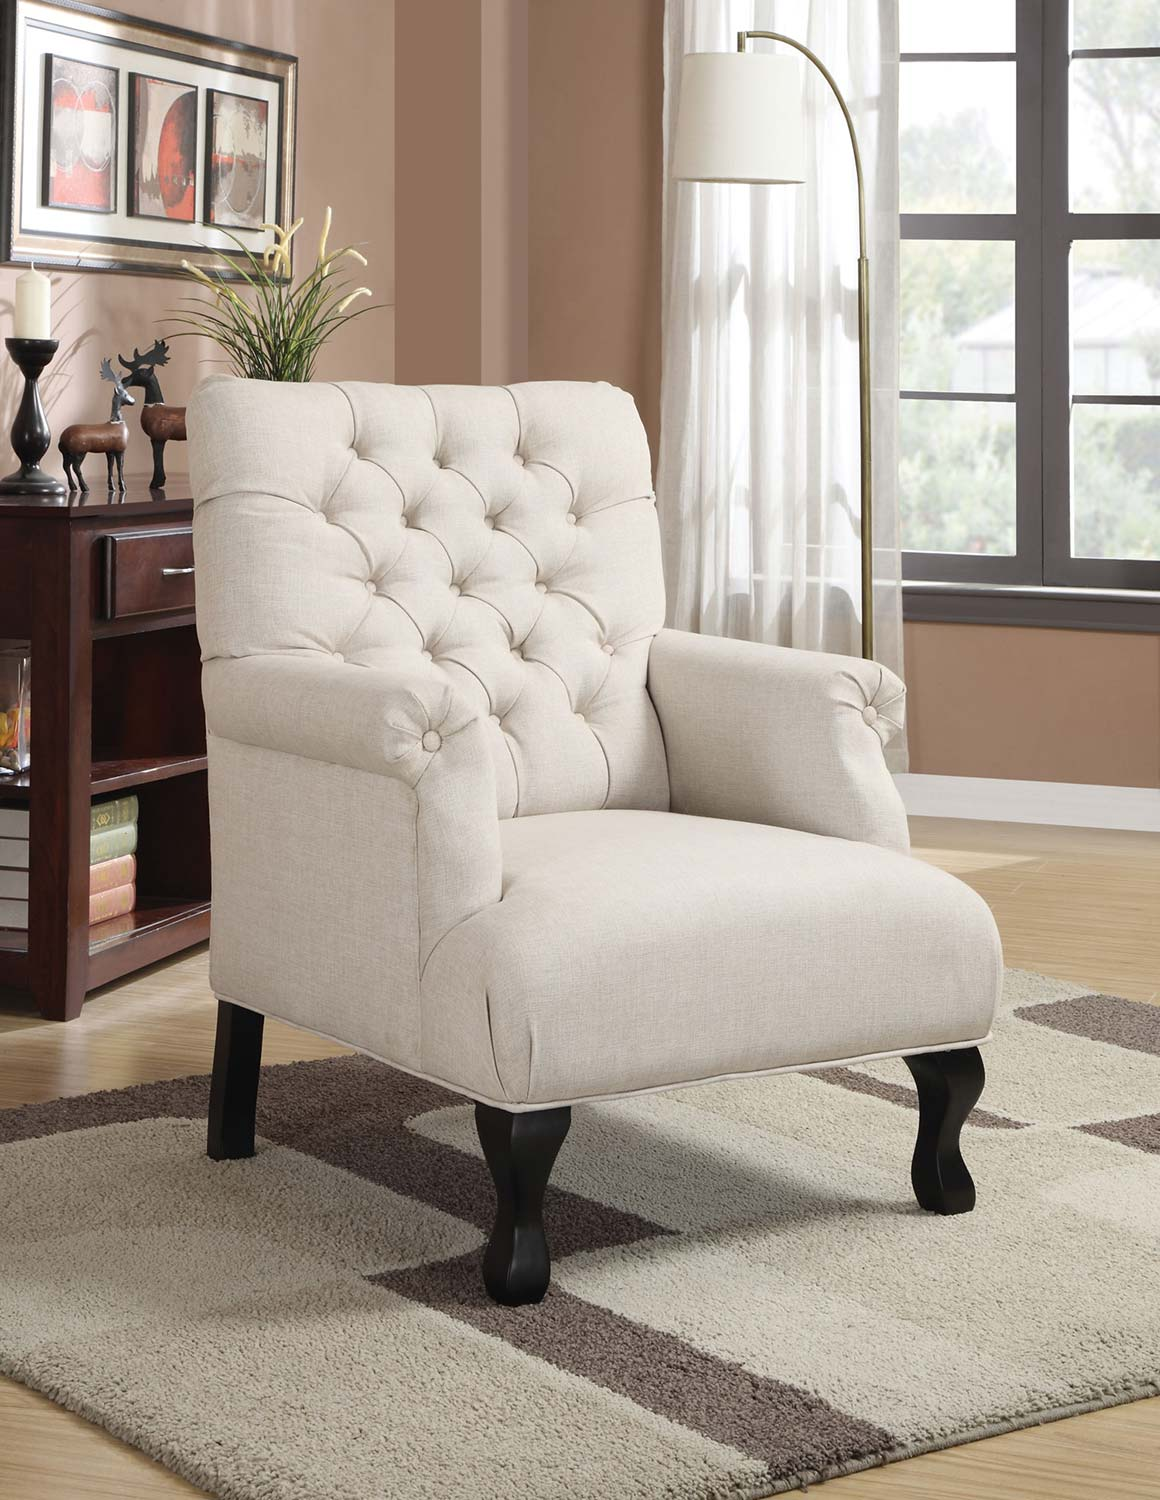 Coaster 902177 Accent Chair - Oatmeal